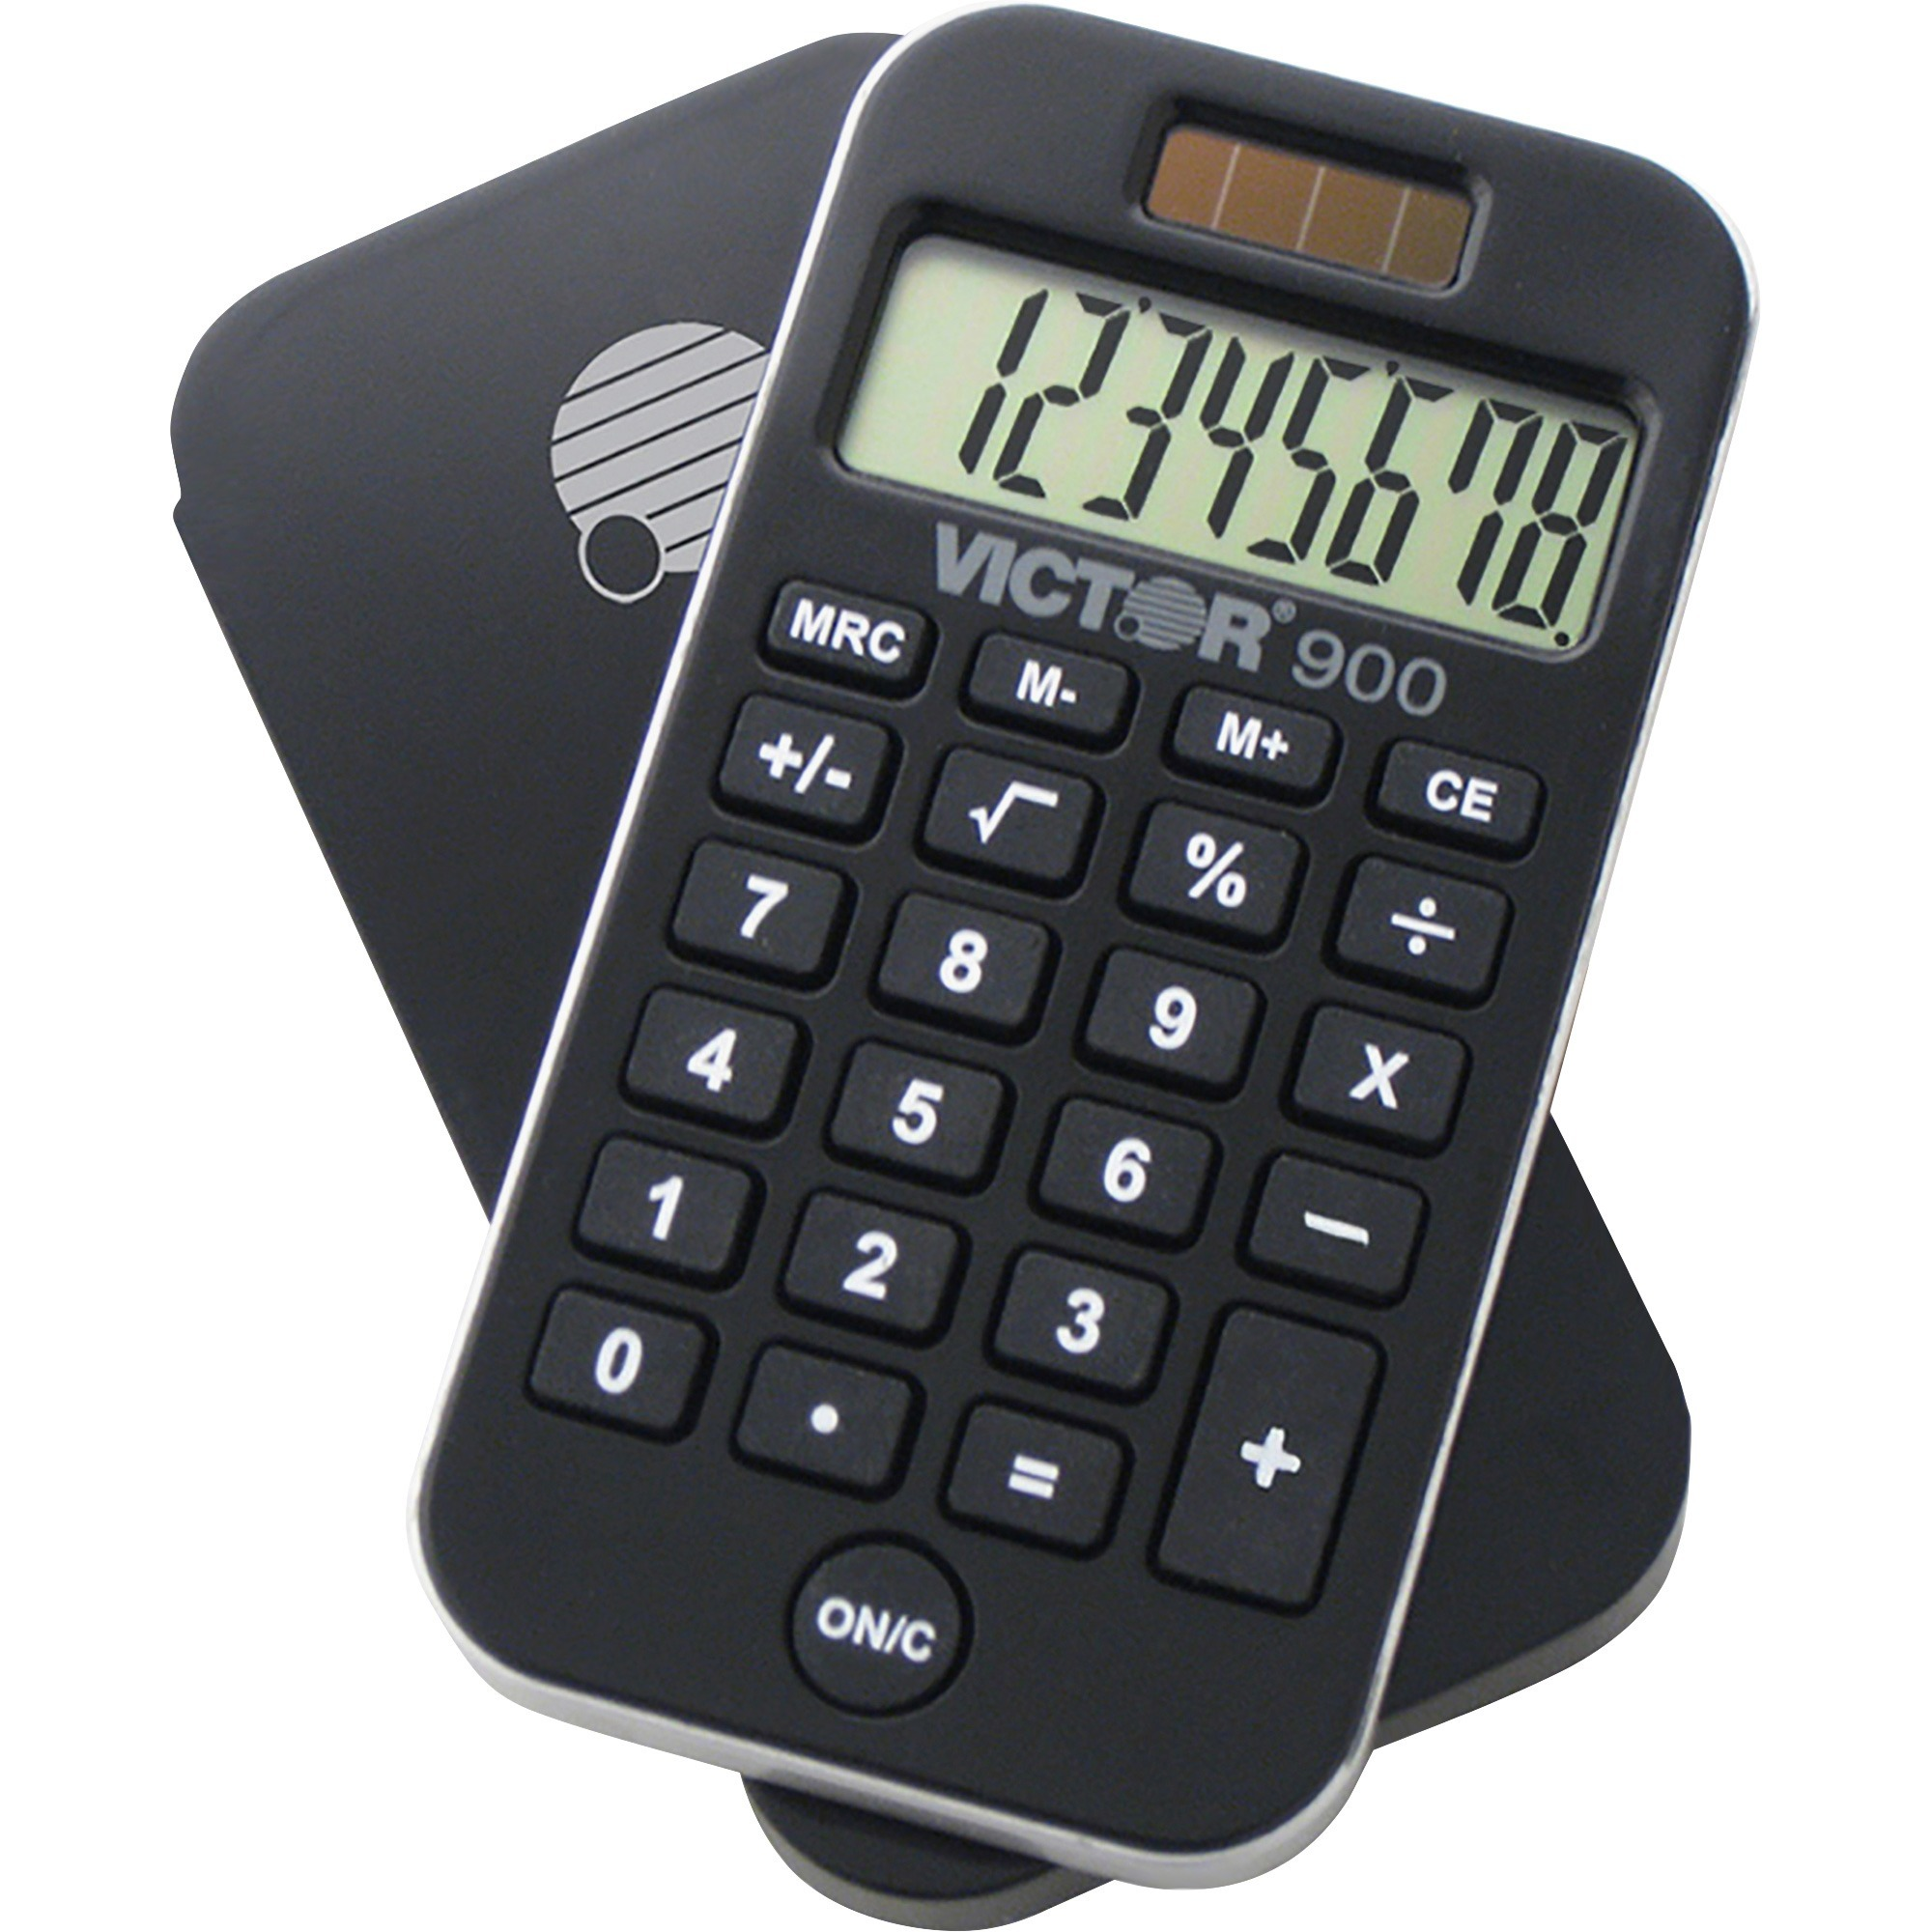 Victor, VCT900, 900 Handheld Calculator, 1 Each, Black